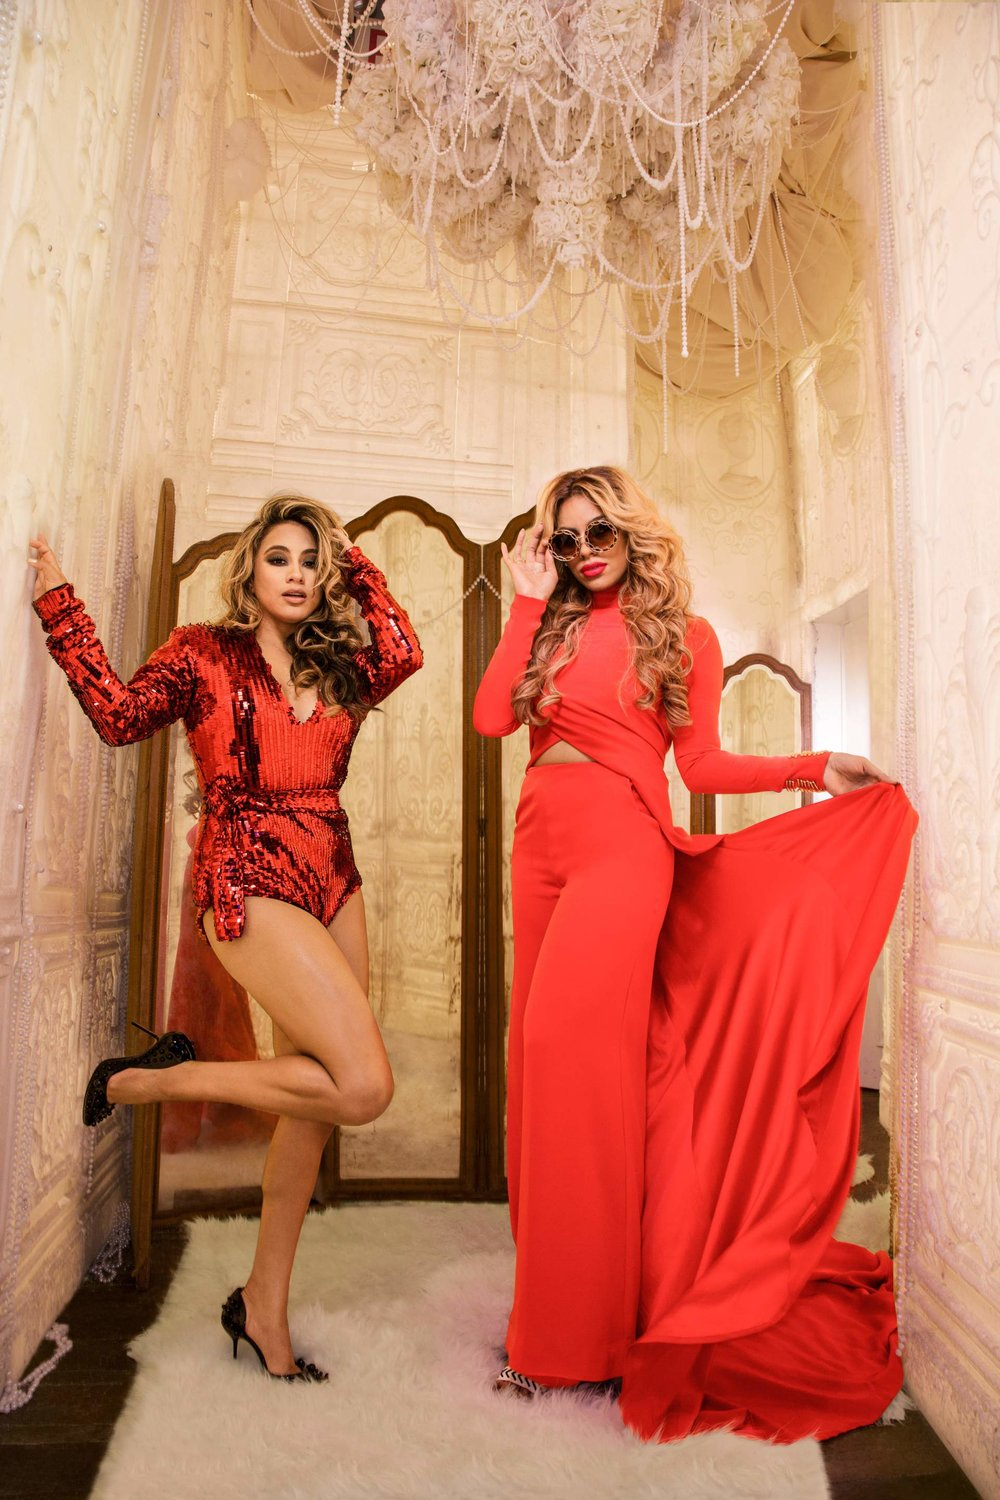 Cosmo for Latinas   Magazine Celebrity Fashion Feature (Ally Brooke & Dinah Jane). Photo: Kareem Black.